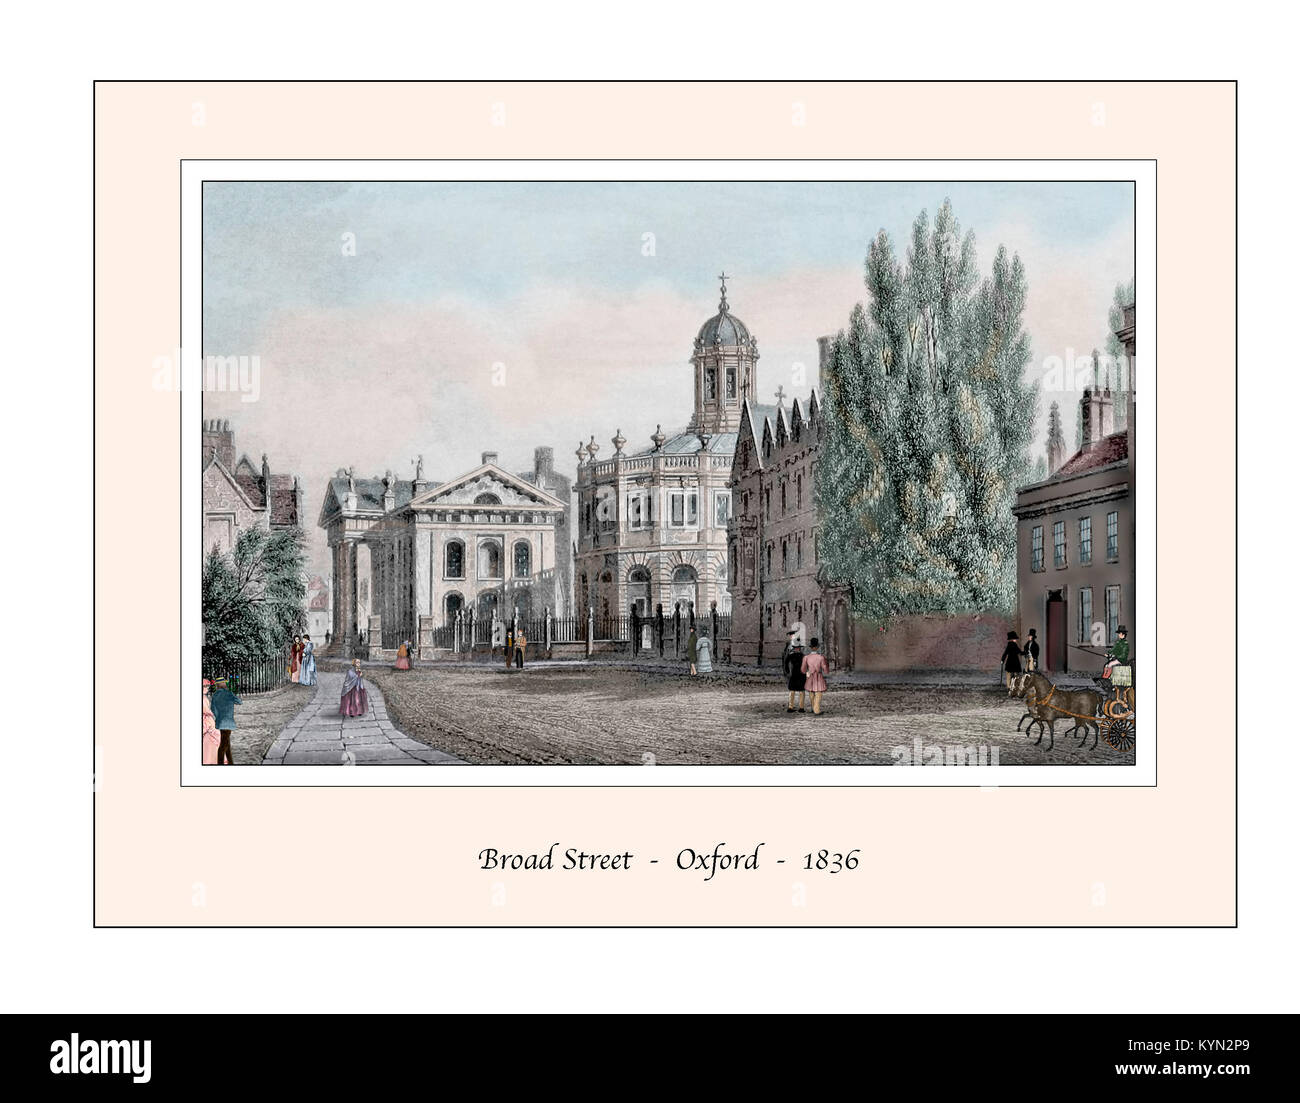 Broad Street Oxford Original Design based on a 19th century Engraving - Stock Image